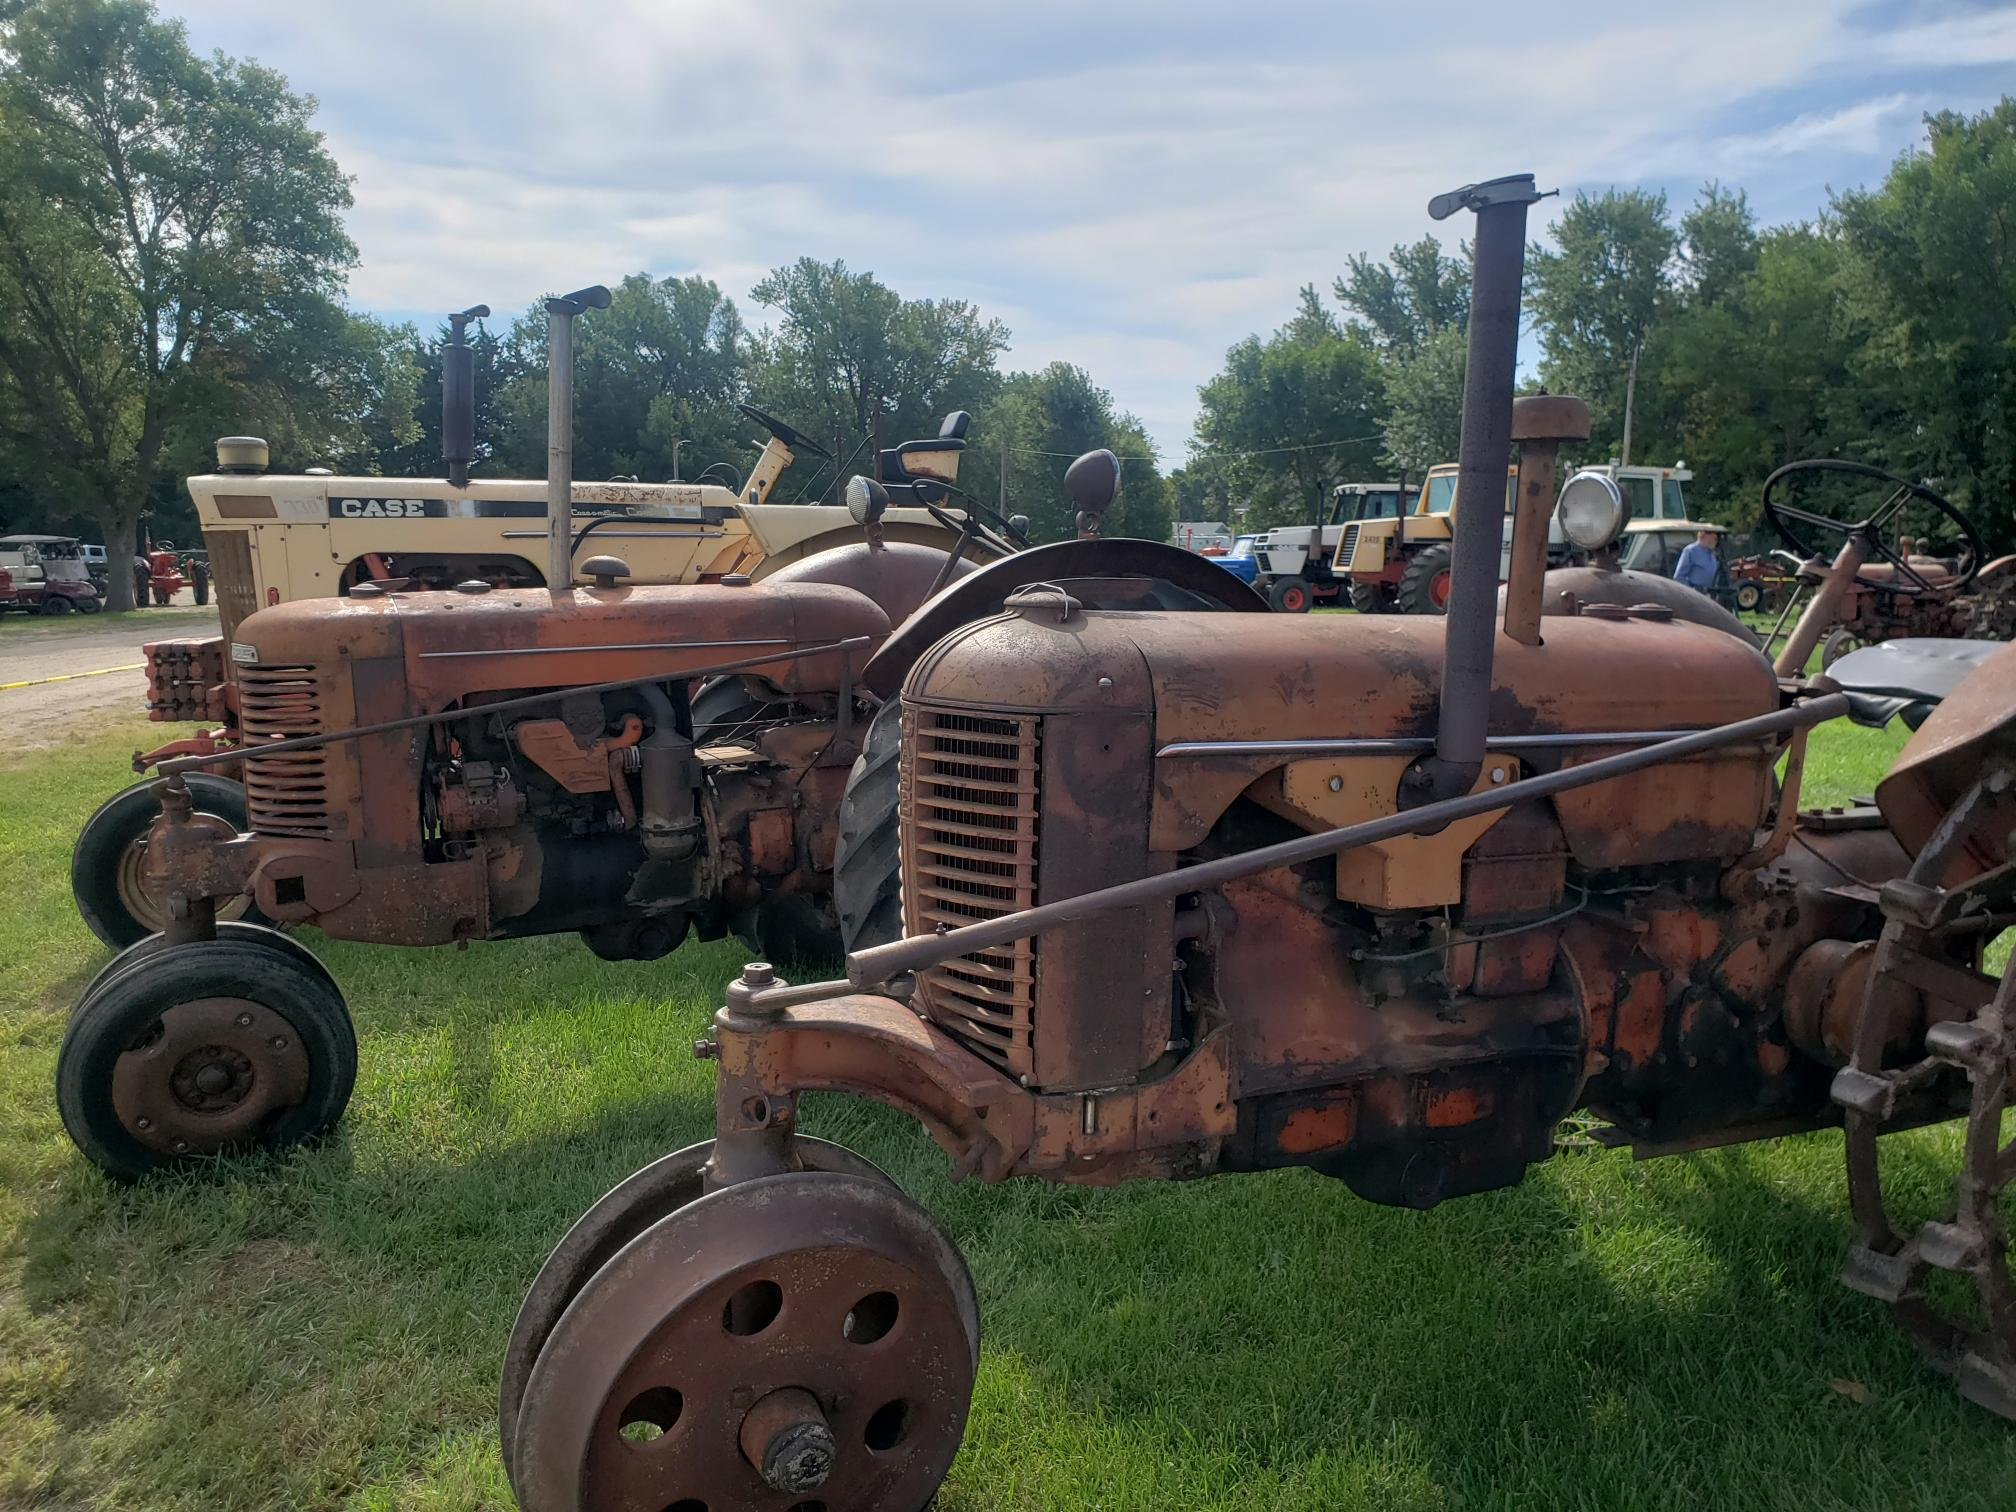 'Pierce Old Time Threshers Bee' rides again